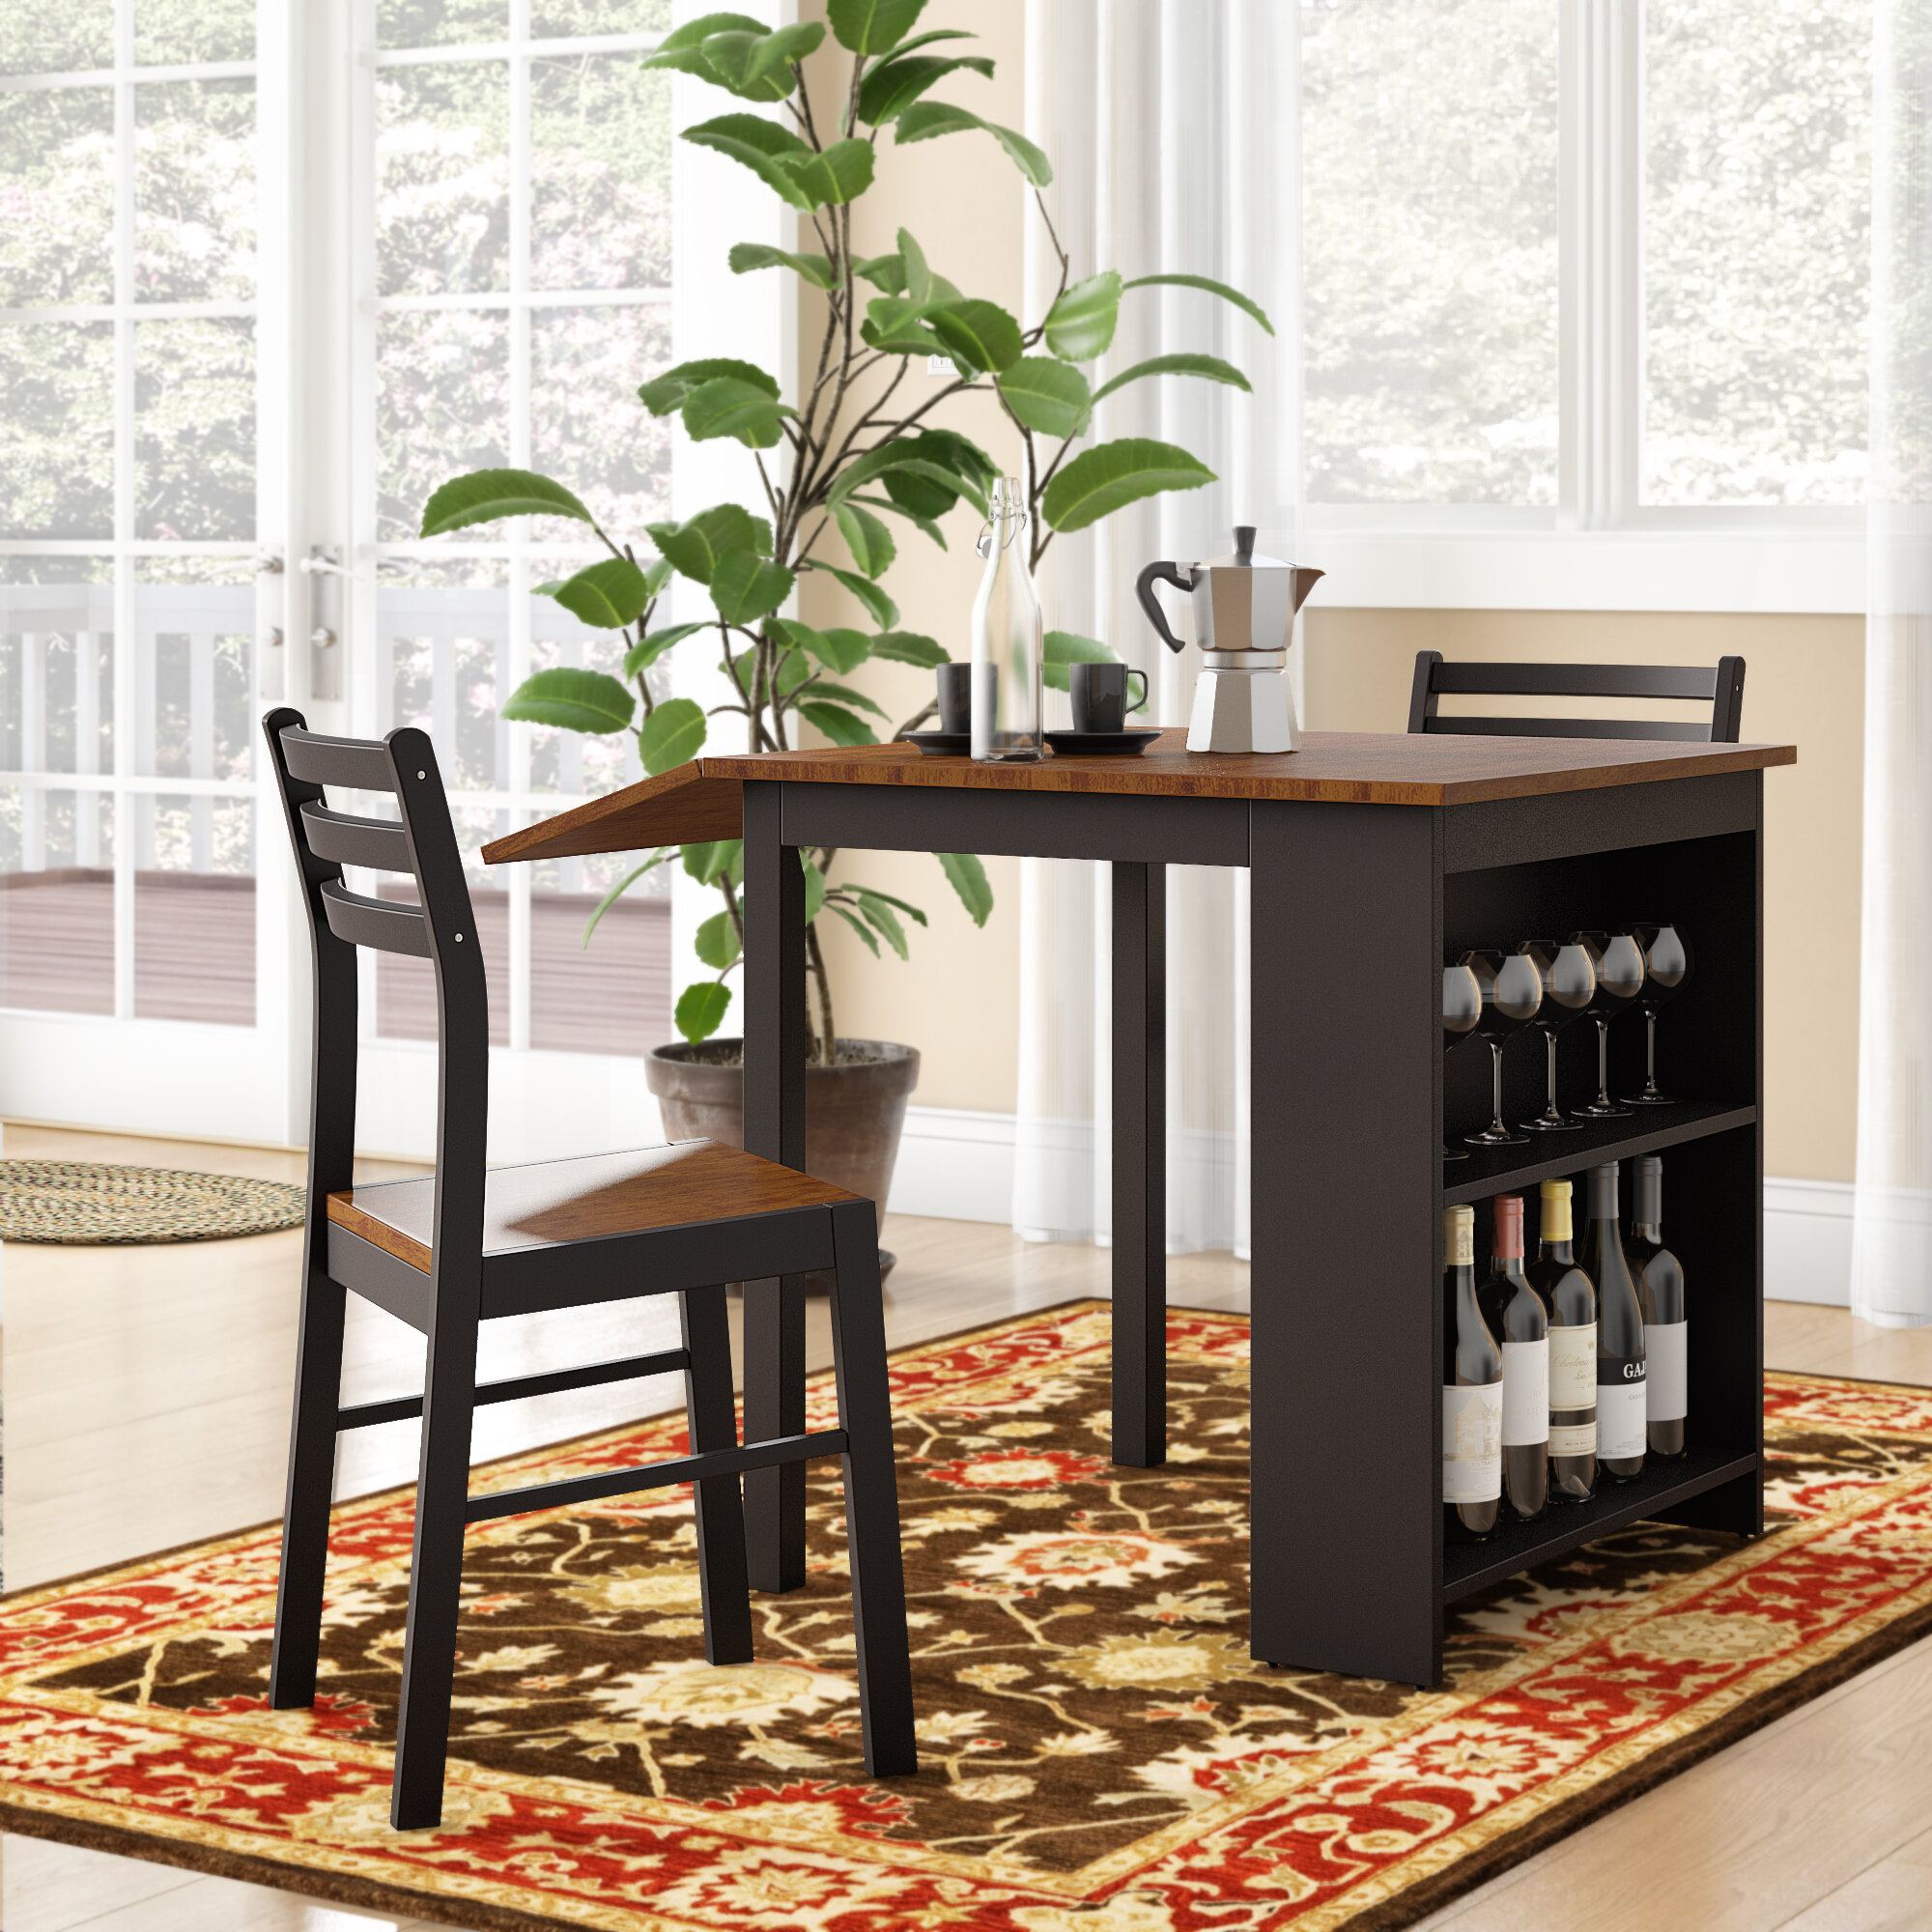 Boehmer 3 Piece Dining Set Inside Best And Newest Baillie 3 Piece Dining Sets (Image 4 of 20)